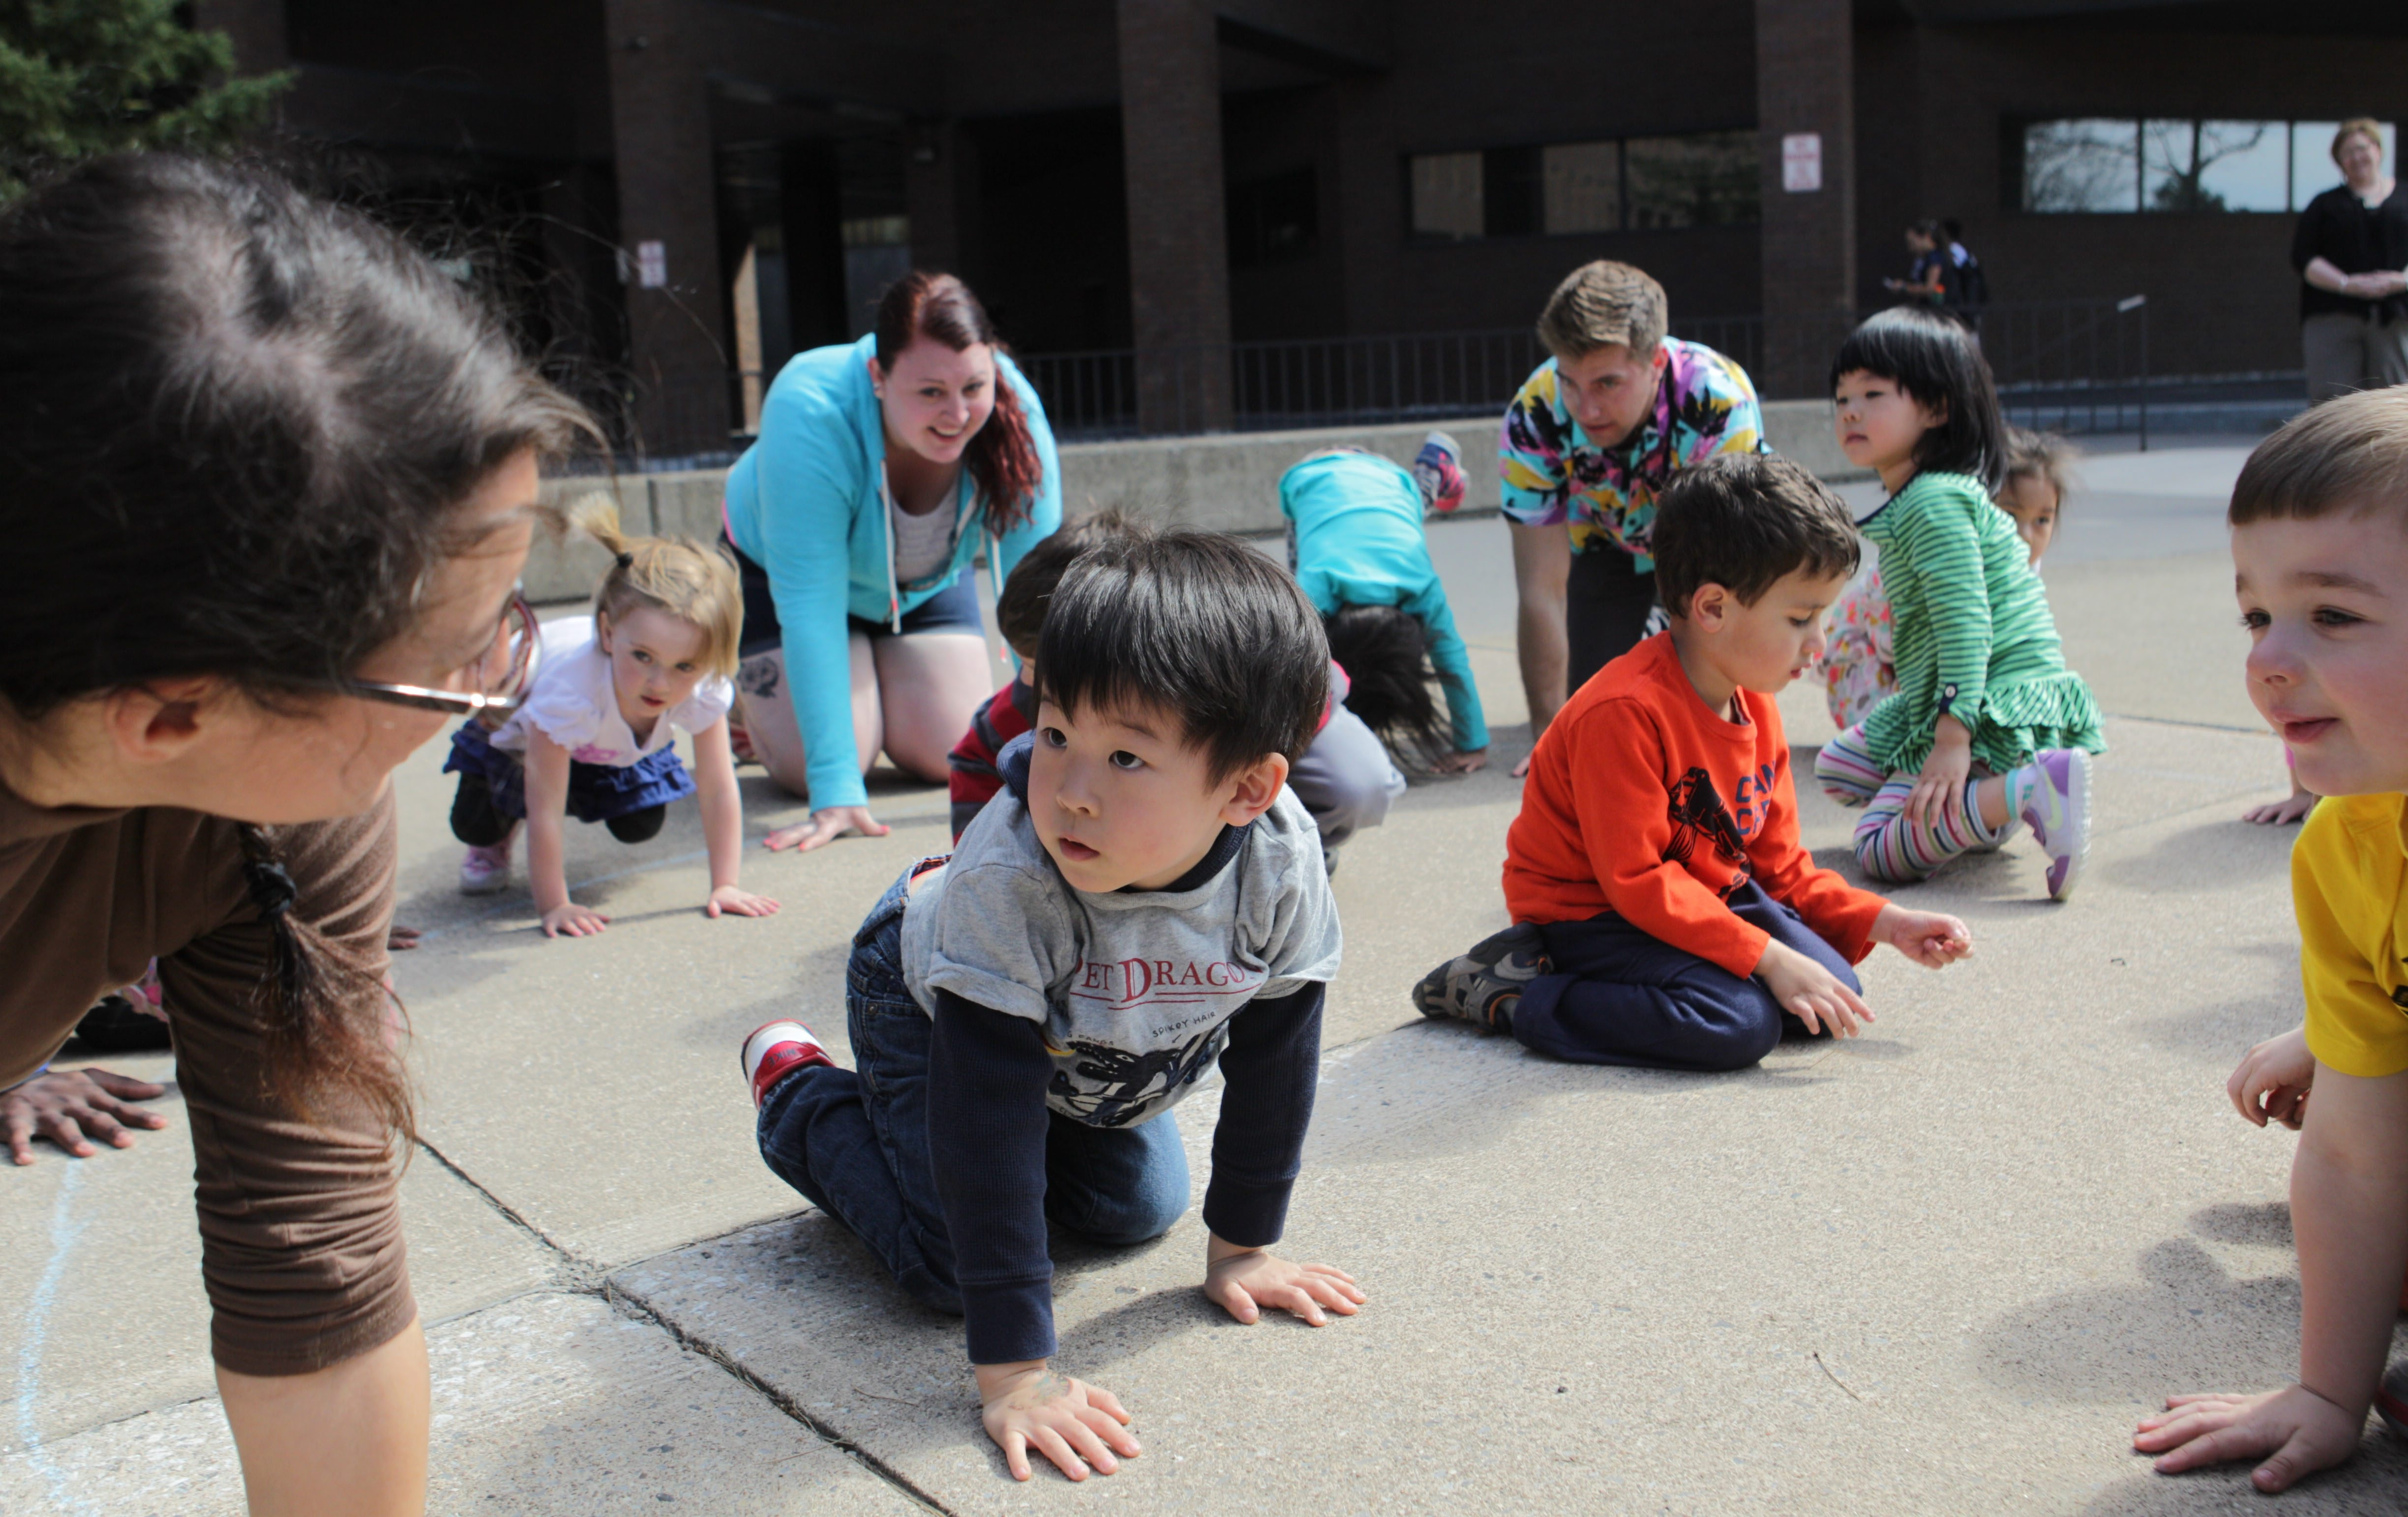 PhD student Alexia Buono, left,  leads the pre school children in a yoga class at the UB Graduate School of Education's Early Childhood Research Center, Monday, April 21, 2014 as part of their exercise program.  In center is Joshua Yoo, 4.   (Sharon Cantillon/Buffalo News)